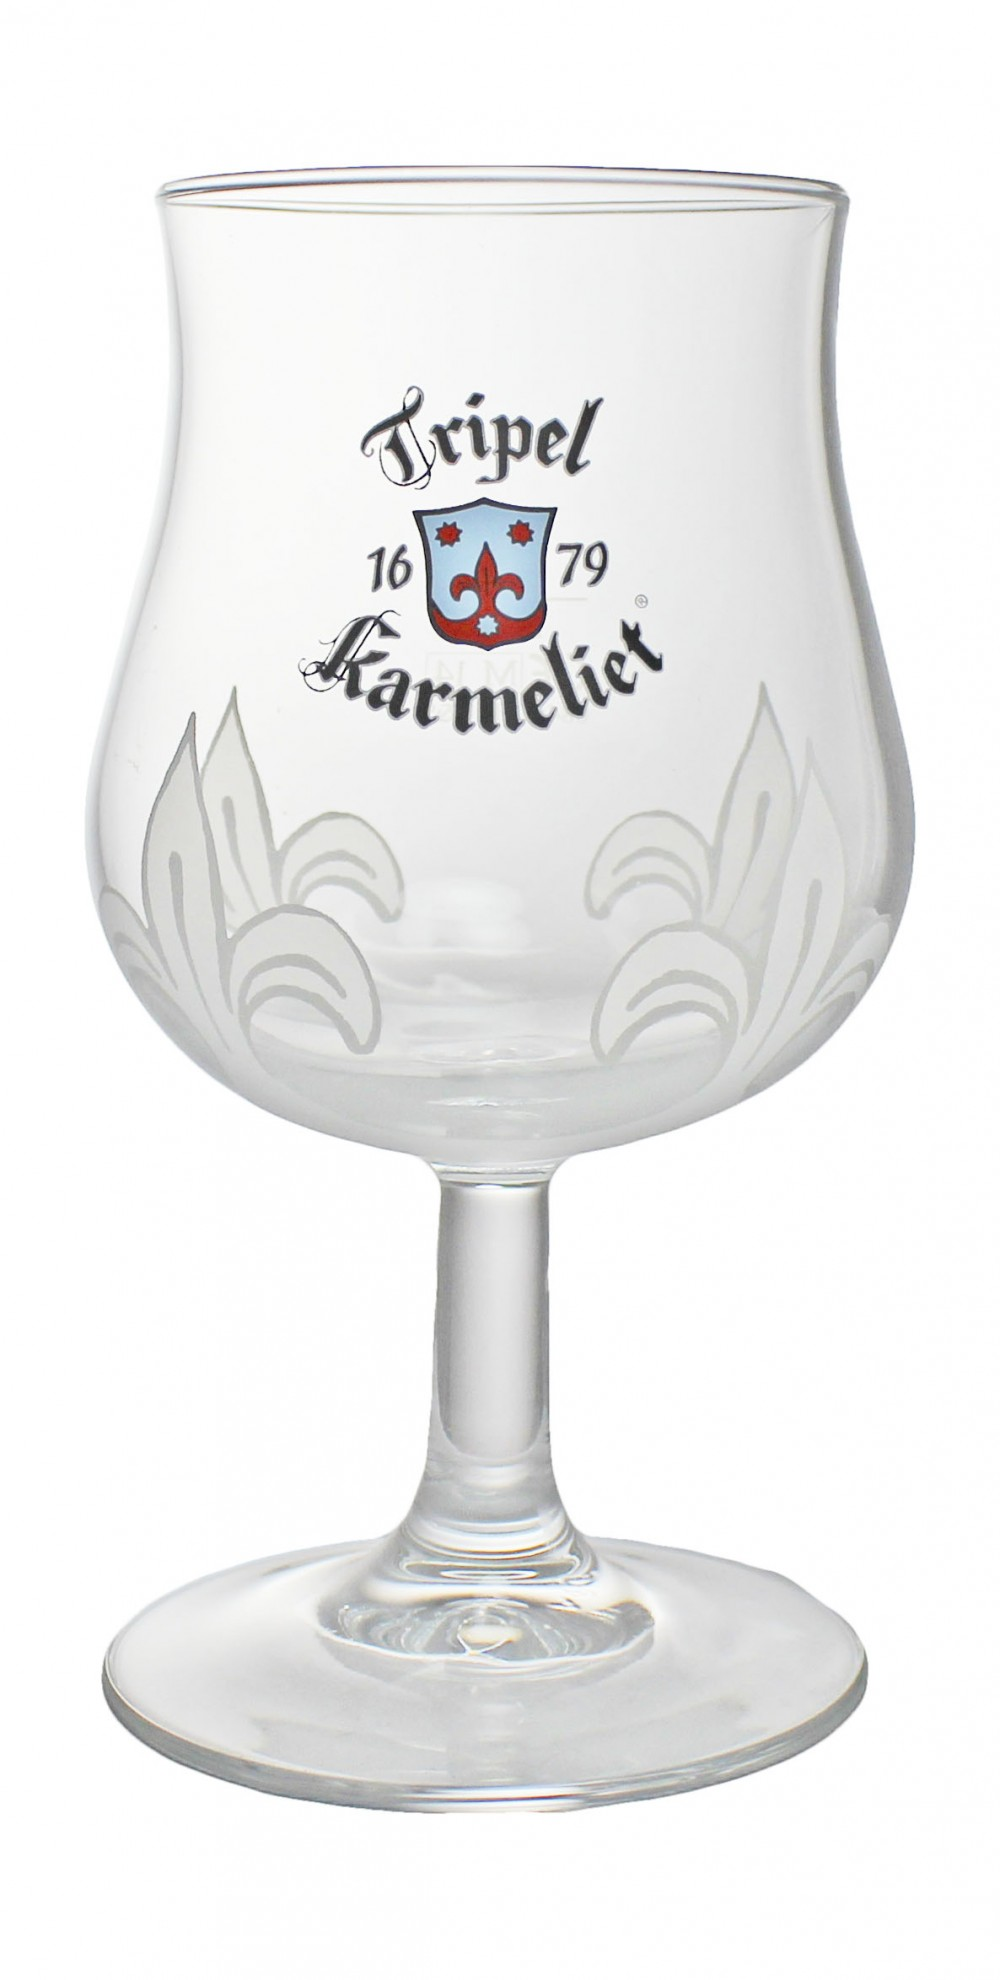 Photo de face du verre Karmeliet Tripel